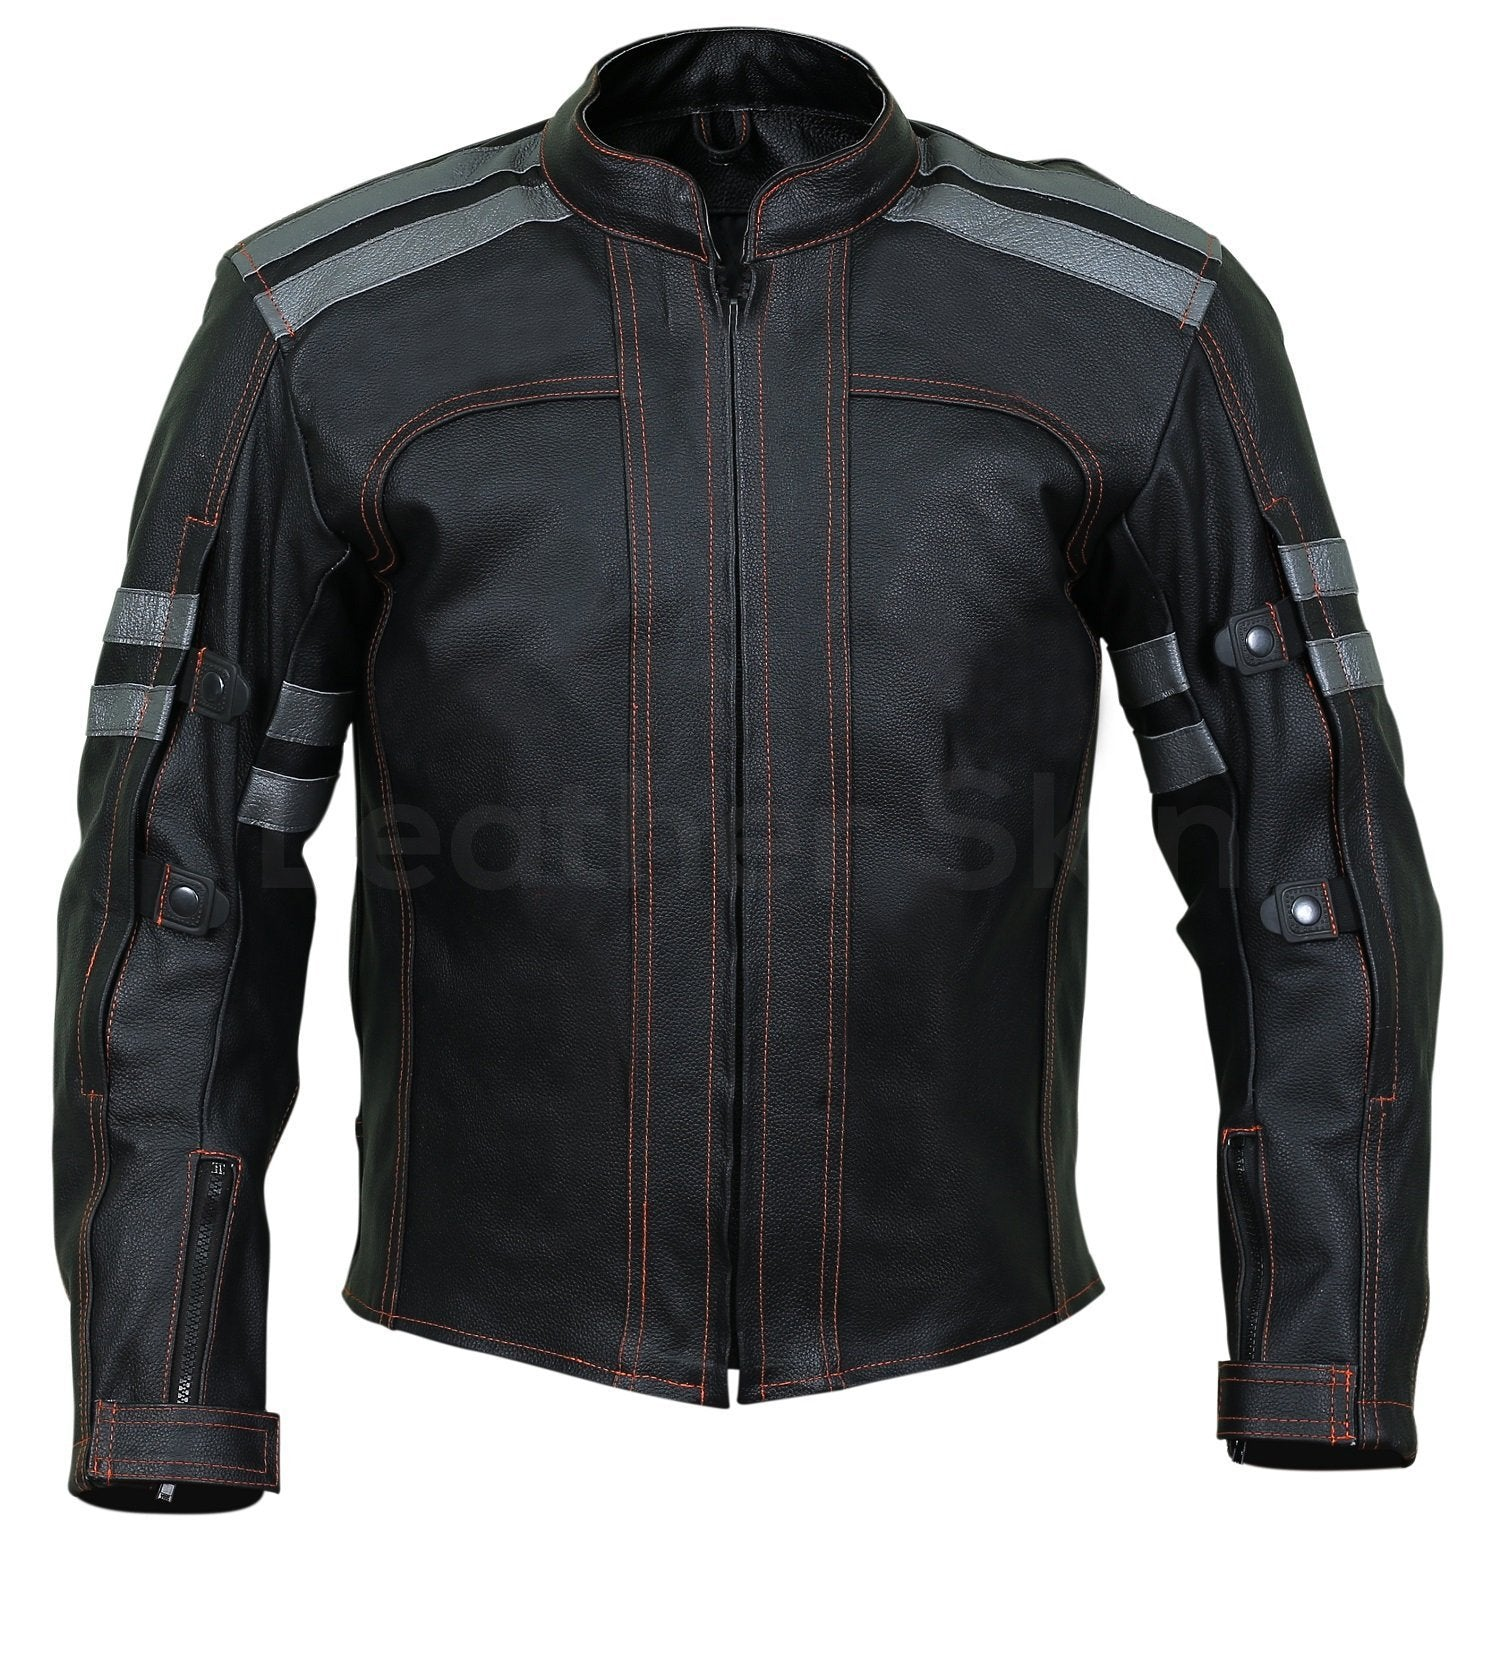 Men Black Motorcycle Biker Leather Jacket with Red Stitching